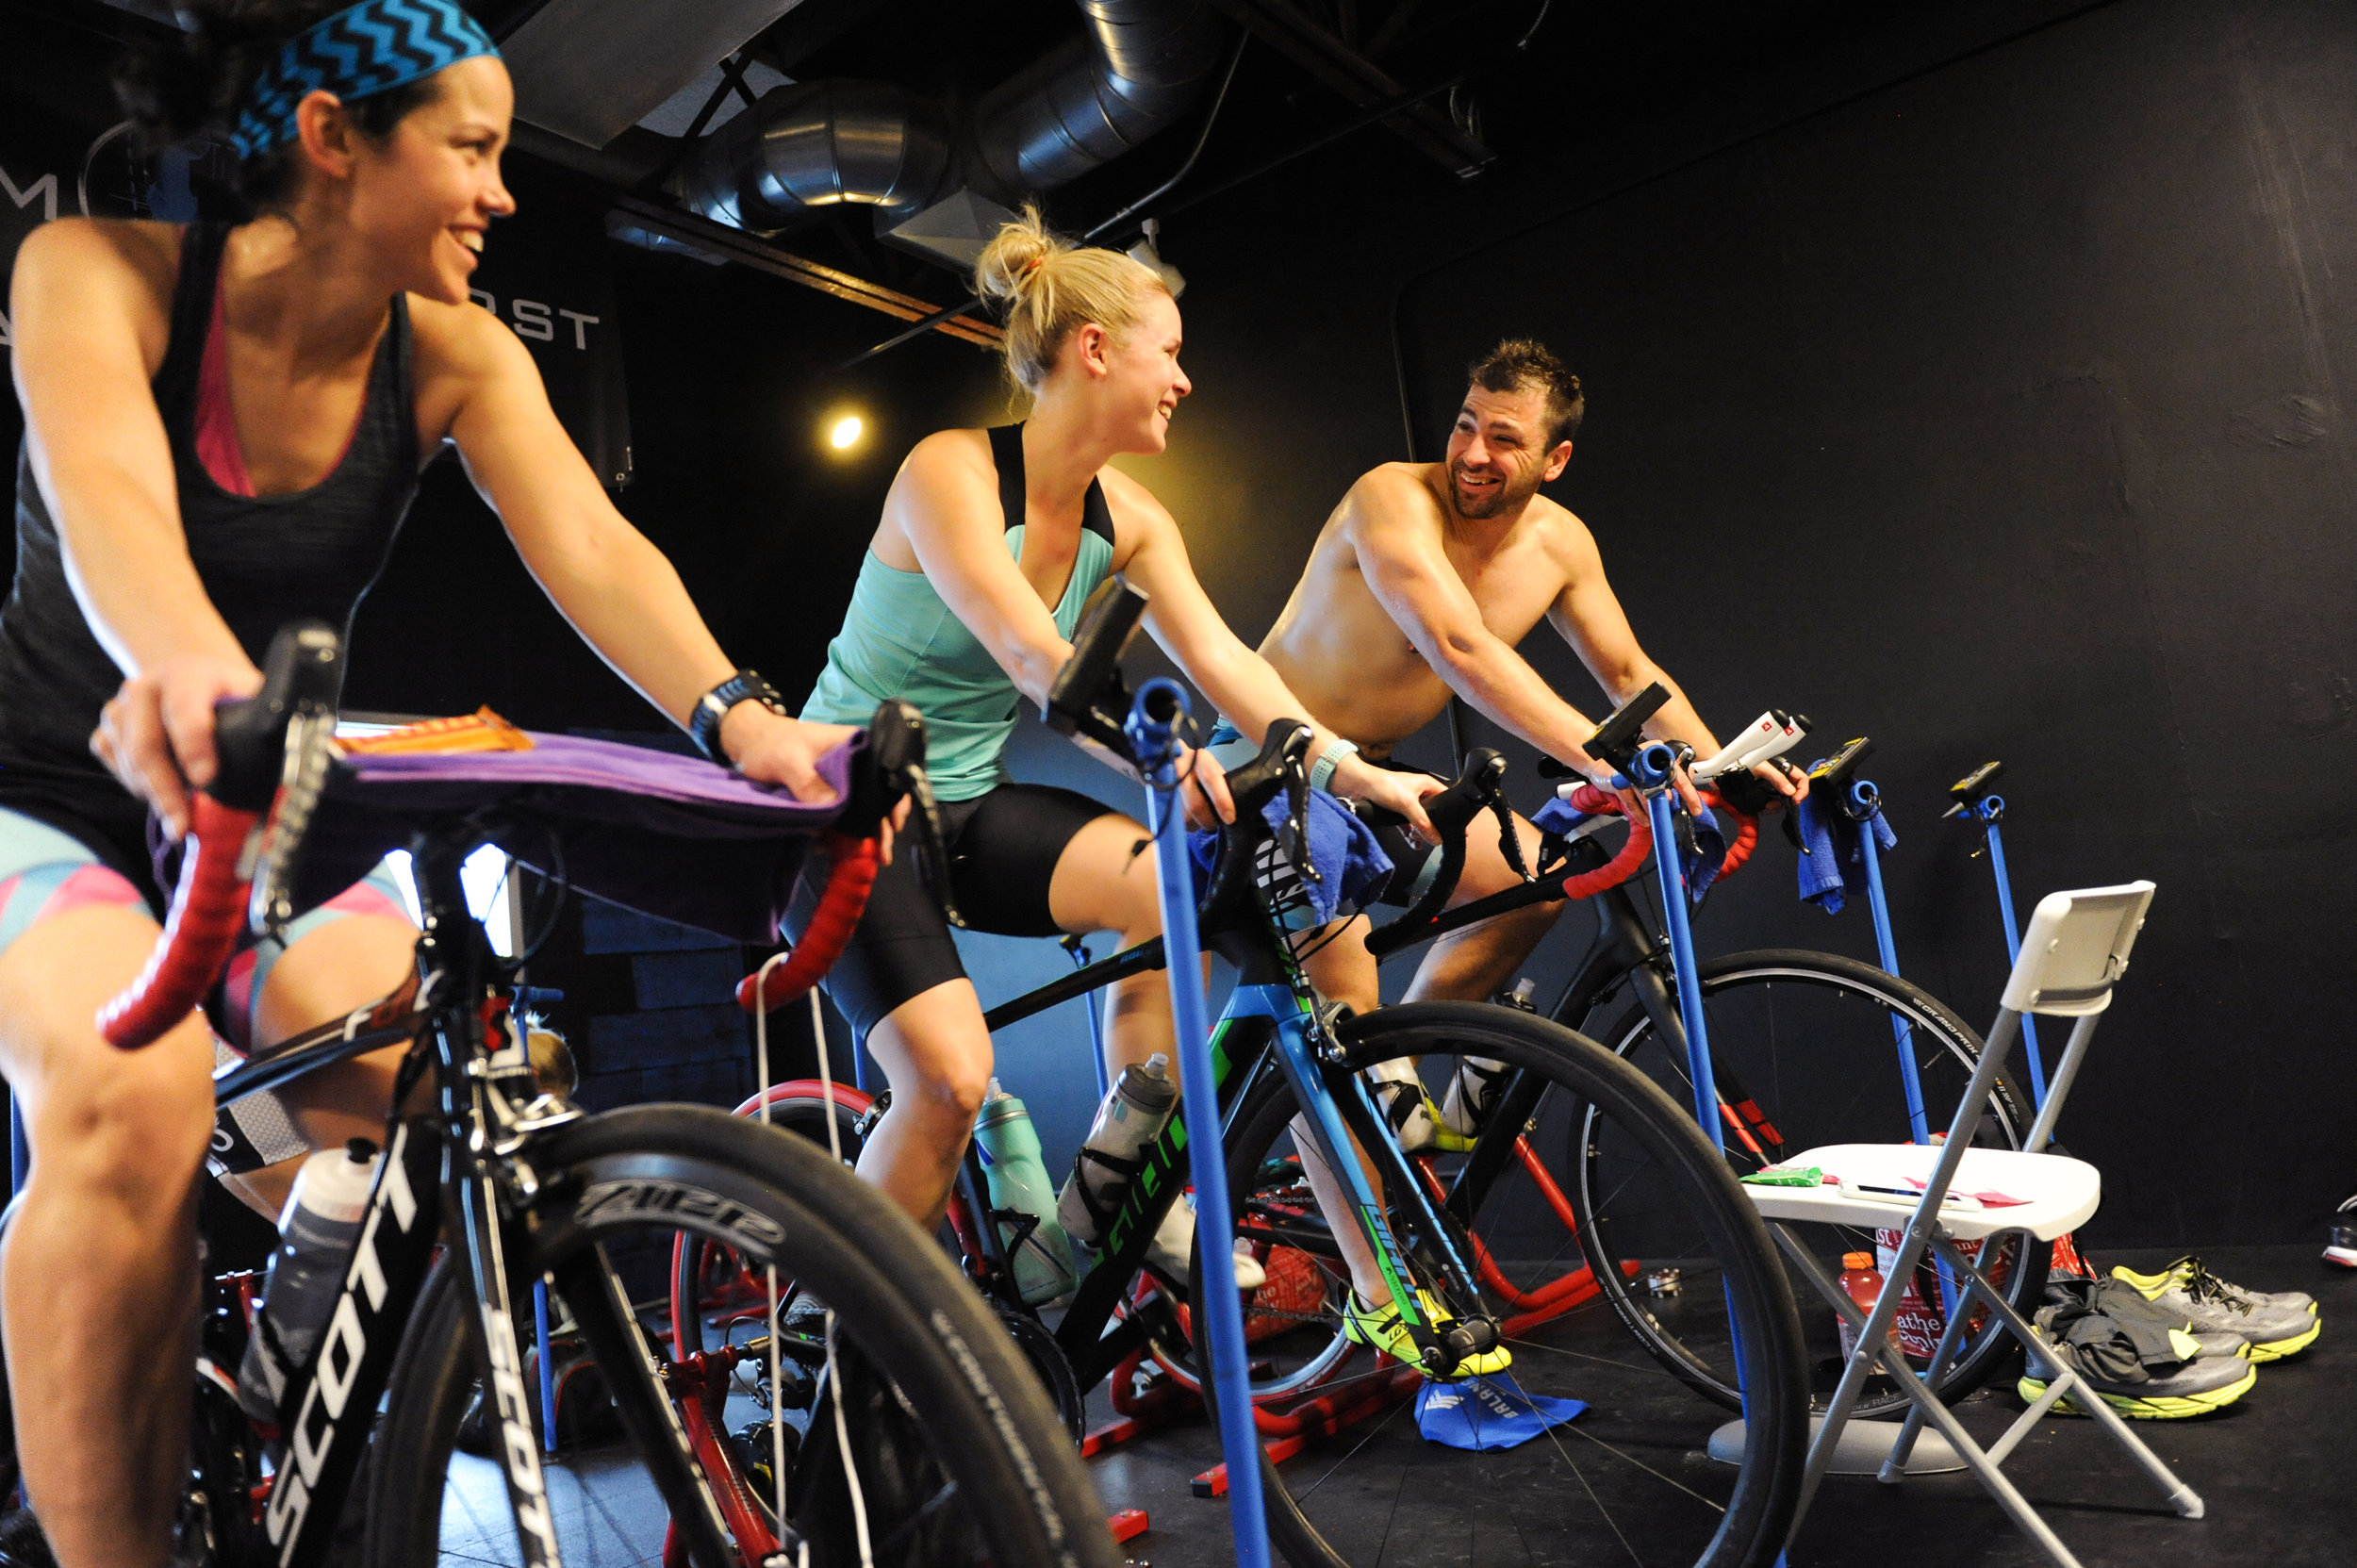 At BAM HQ, all you need is your bike. We have several Wahoo KICKRs and CompuTrainers you can reserve for weekend rides.